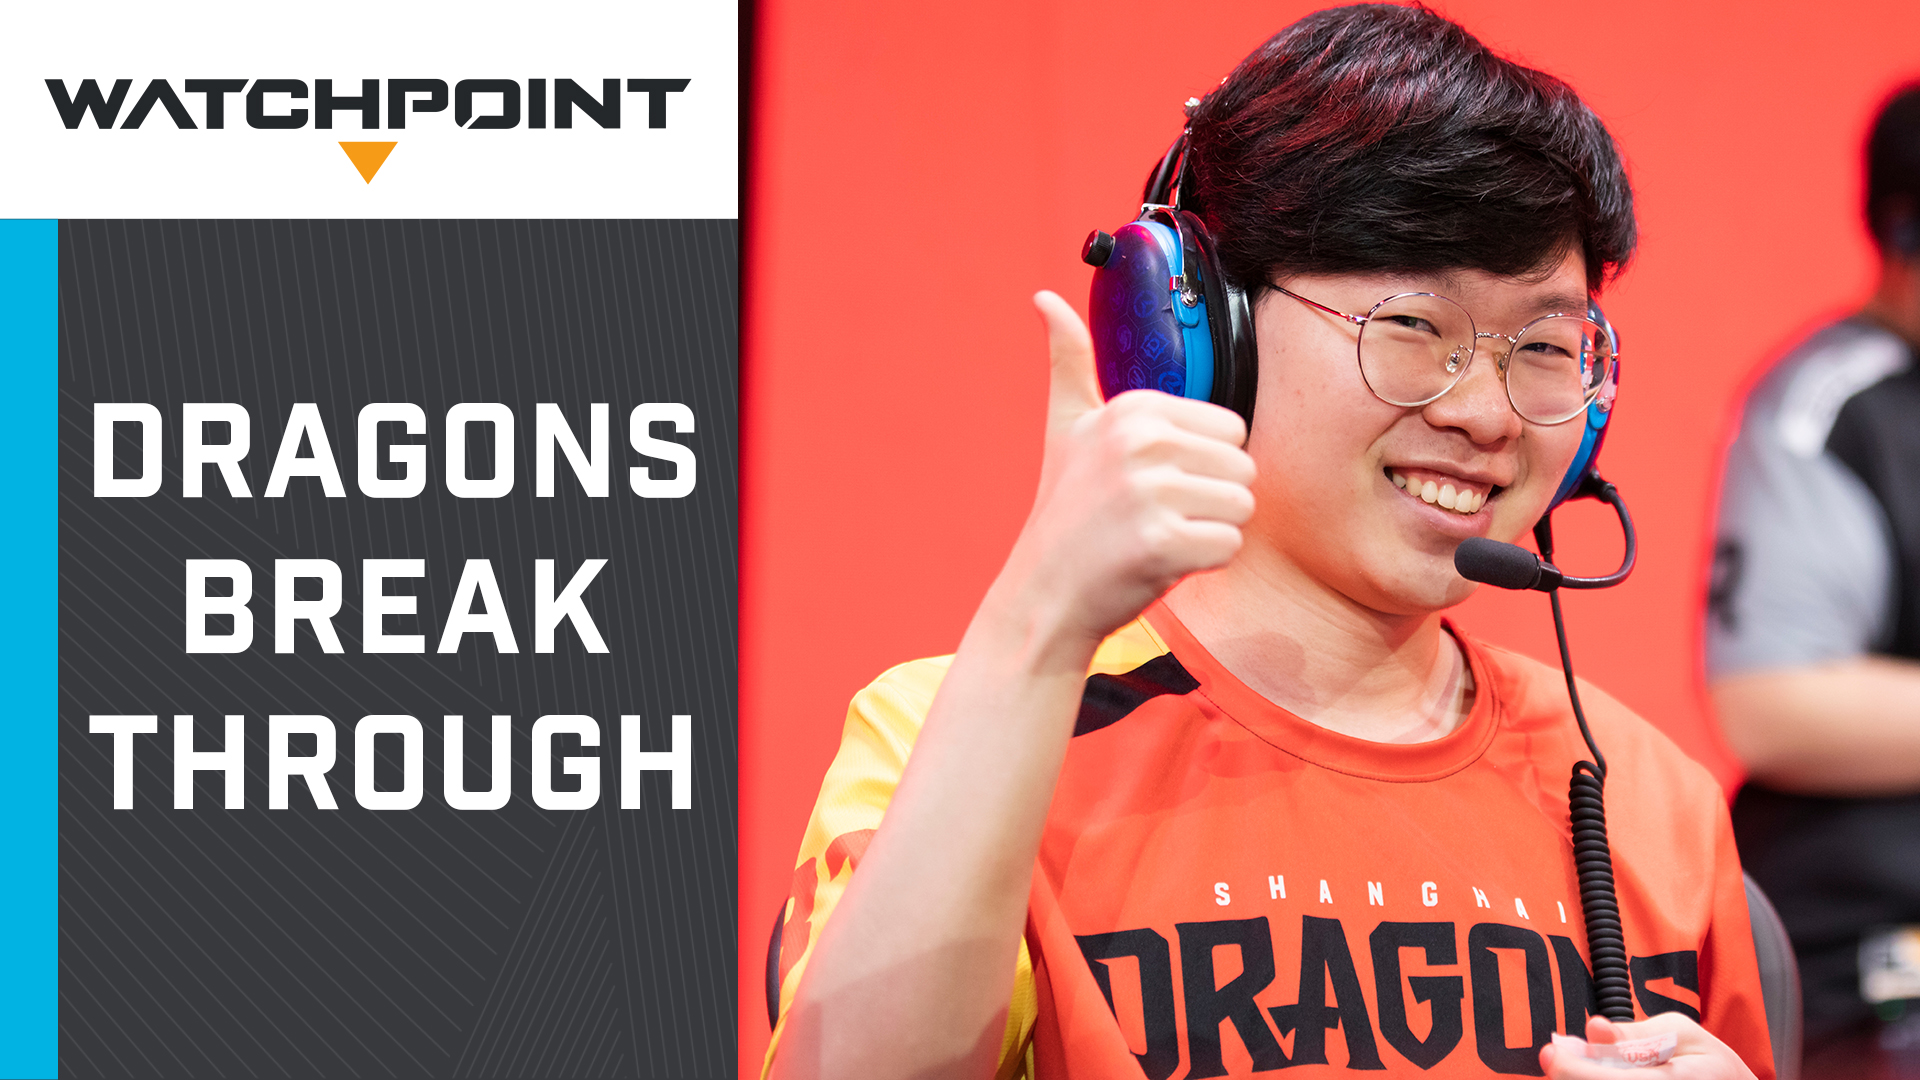 Shanghai Dragons Break Through to Their First Stage Playoffs